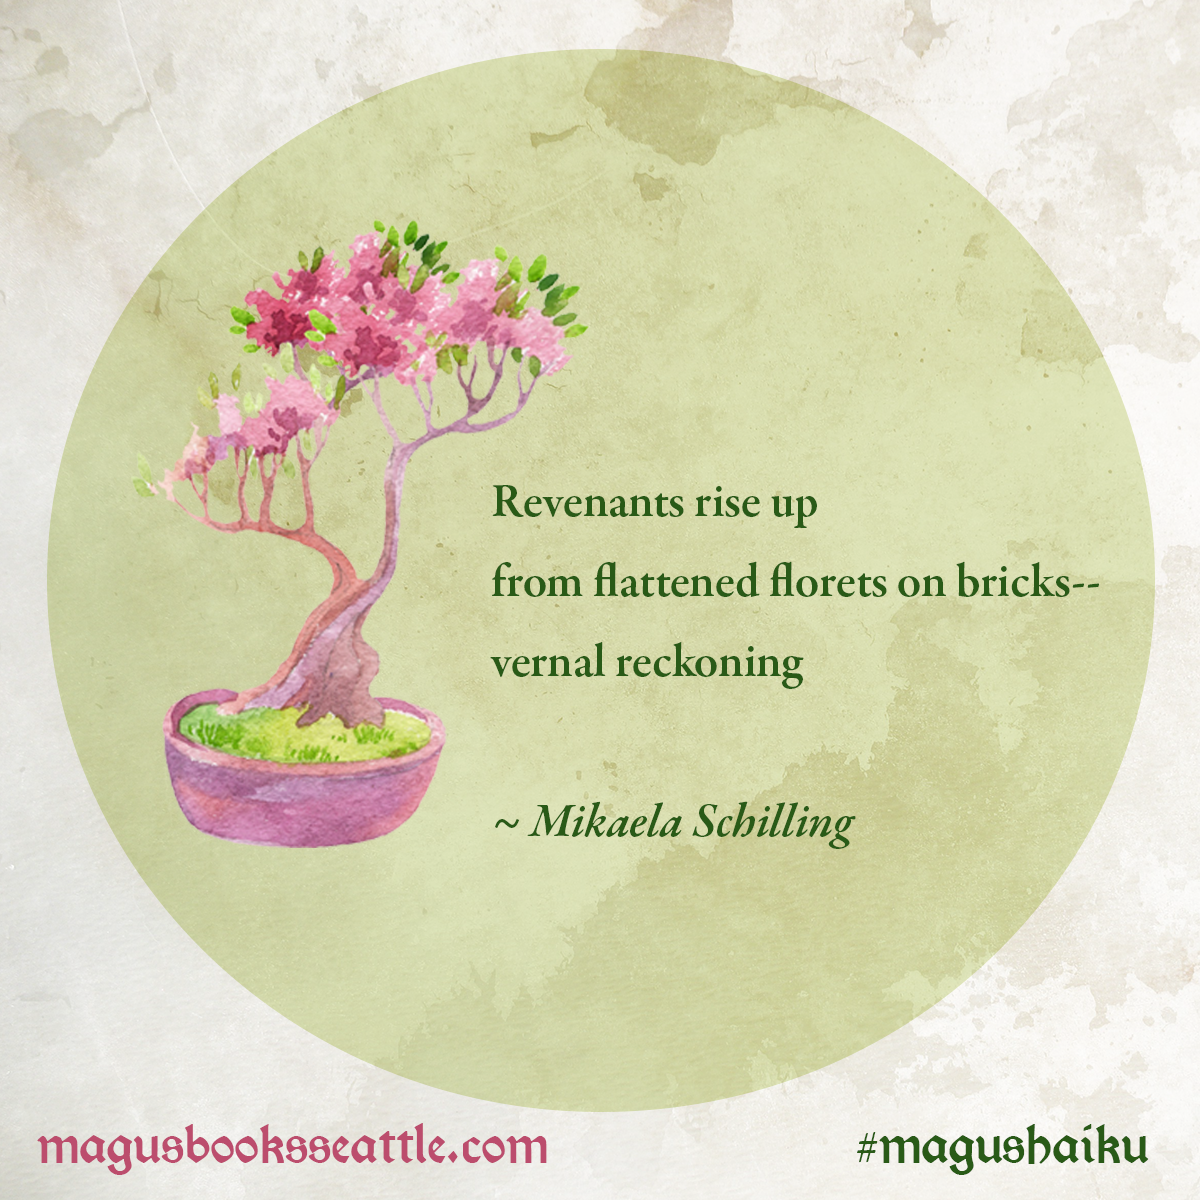 Finalist #3 in our Magus Haiku contest  Revenants rise up from flattened florets on bricks-- vernal reckoning  ~ Mikaela Schilling  #MagusHaiku #haiku #NationalPoetryMonth